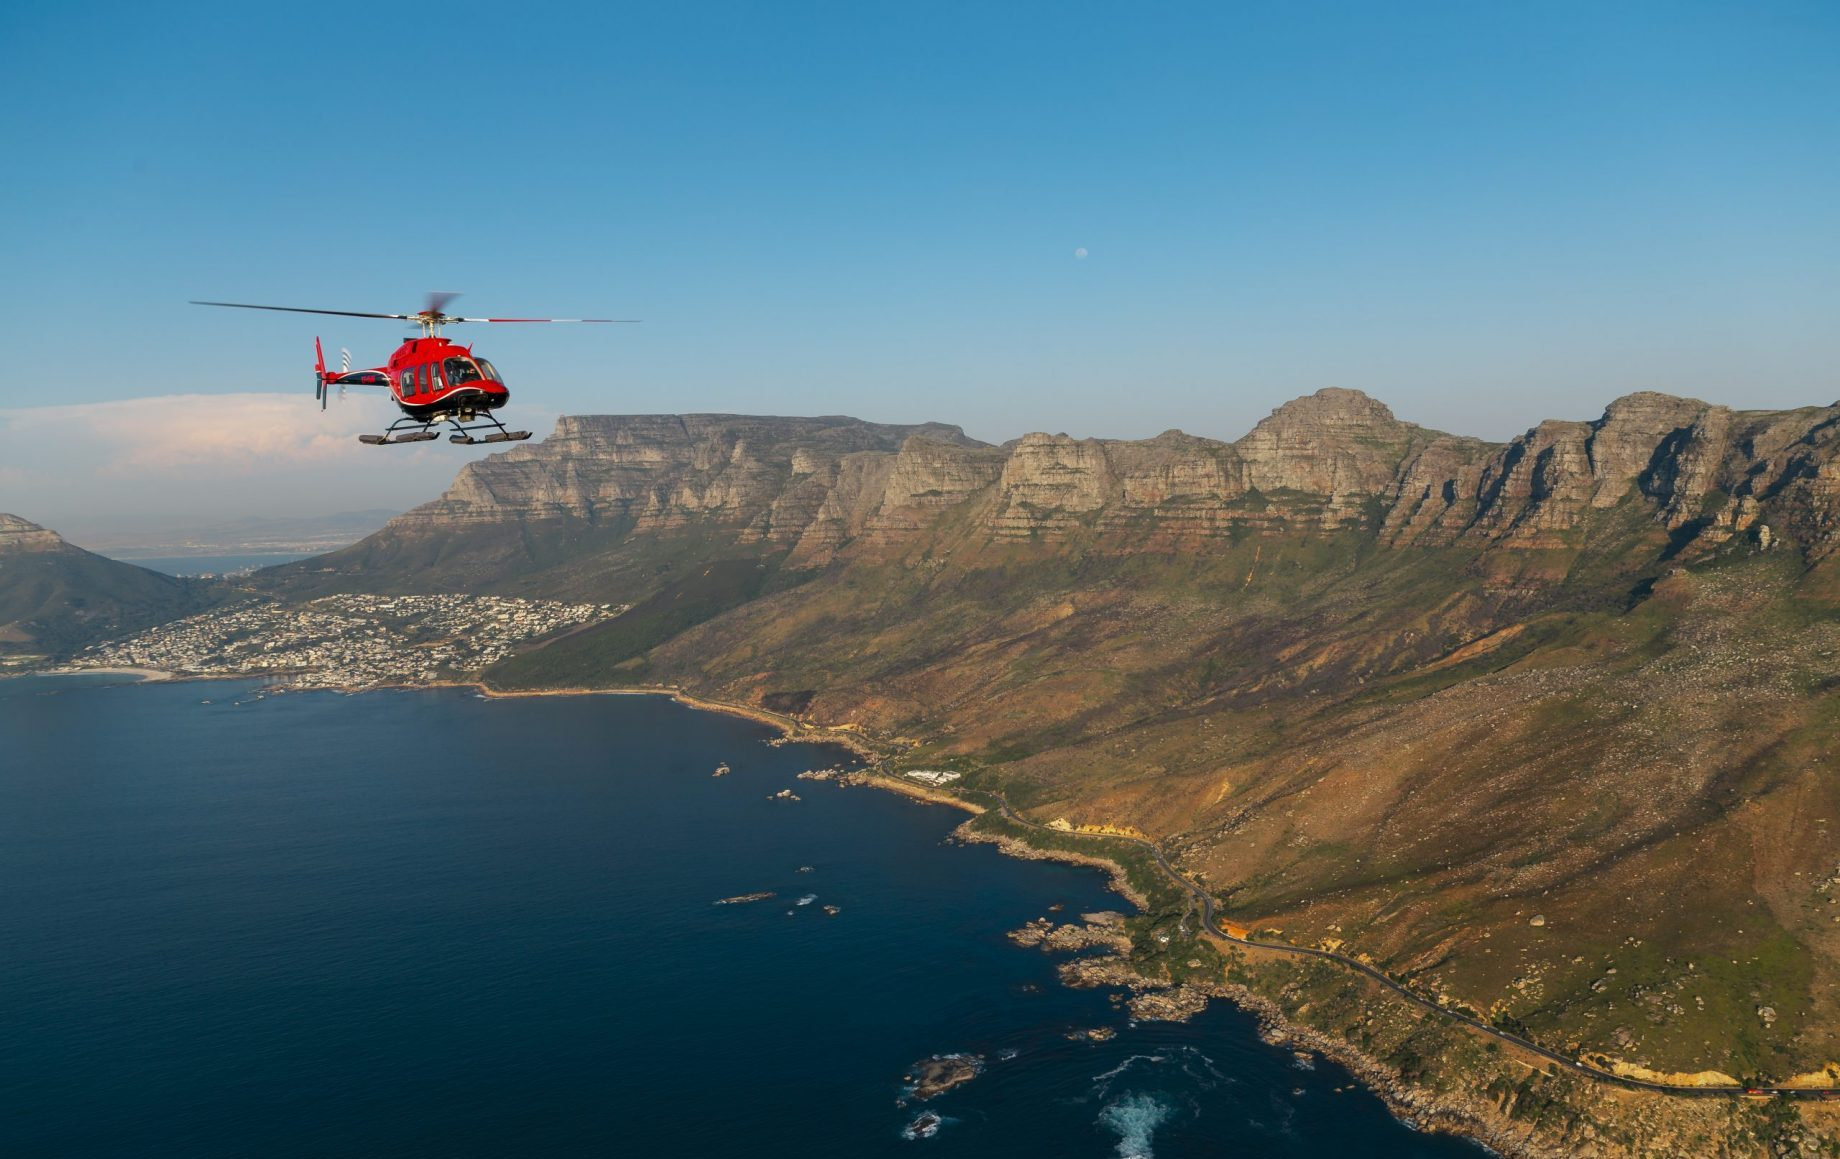 A helicopter ajacent to mountains of cape town